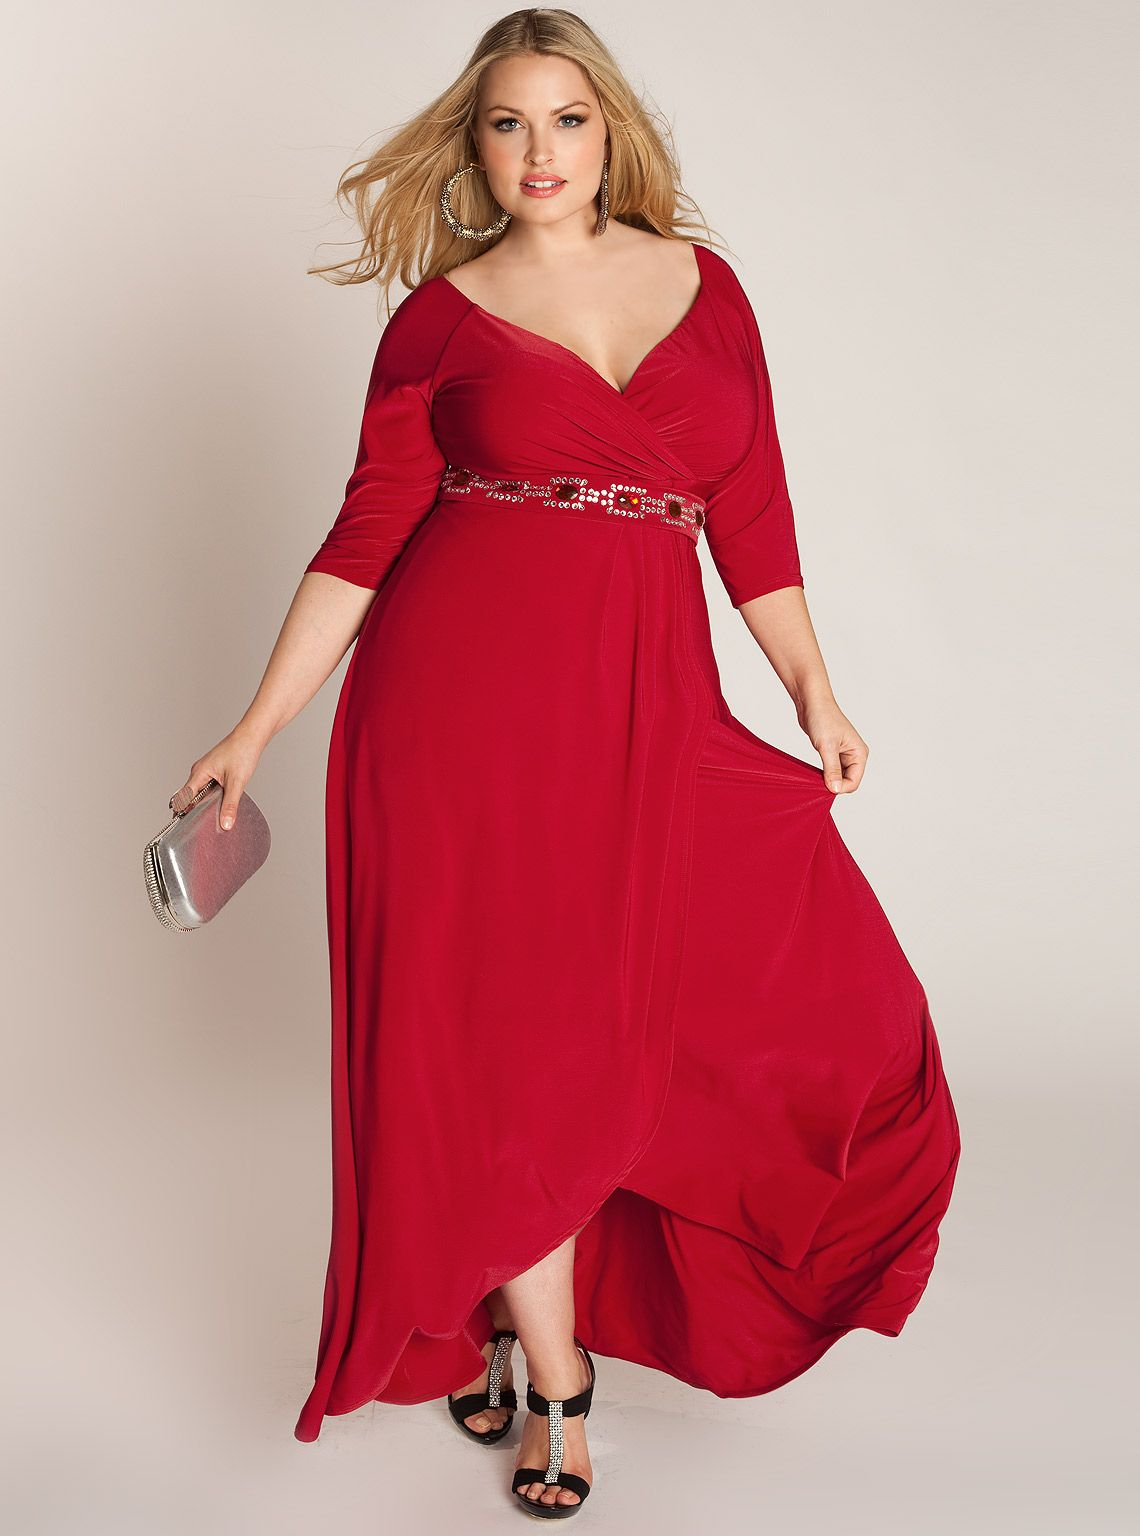 Pasazz favorite nadine jeweled plus size gown in ruby my